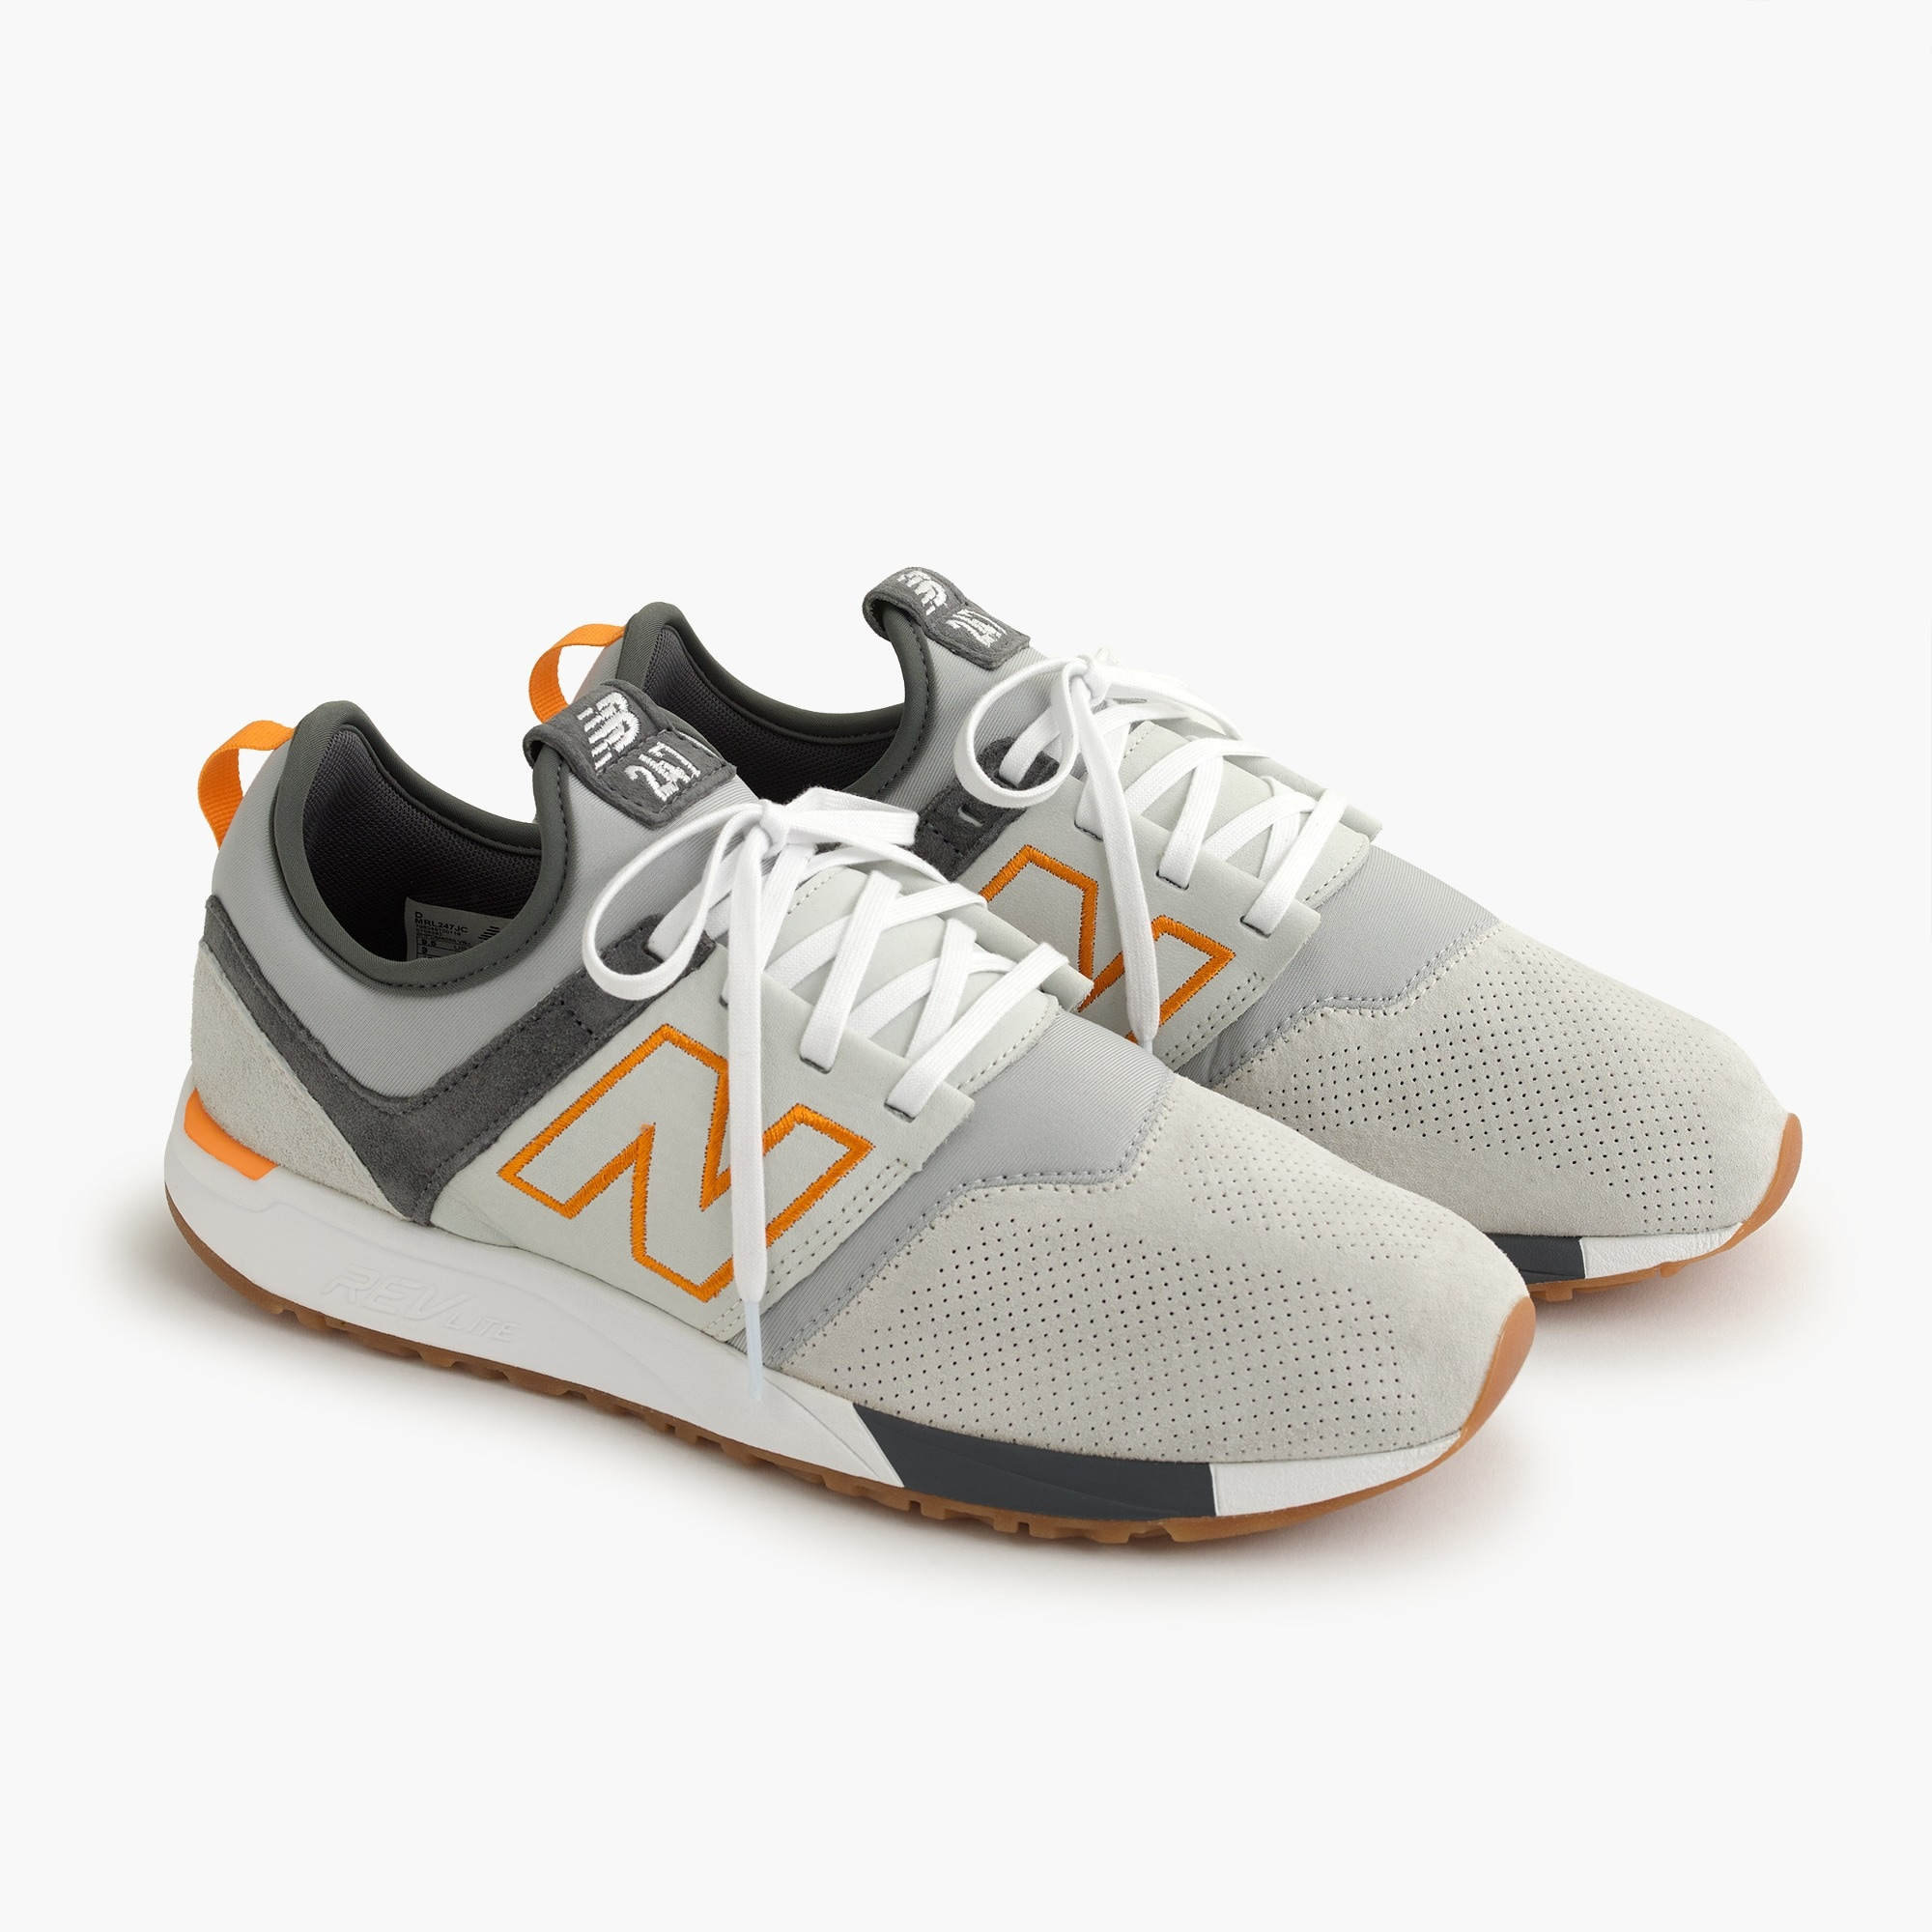 Image 4 for New Balance® for J.Crew 247 Luxe sneakers in suede